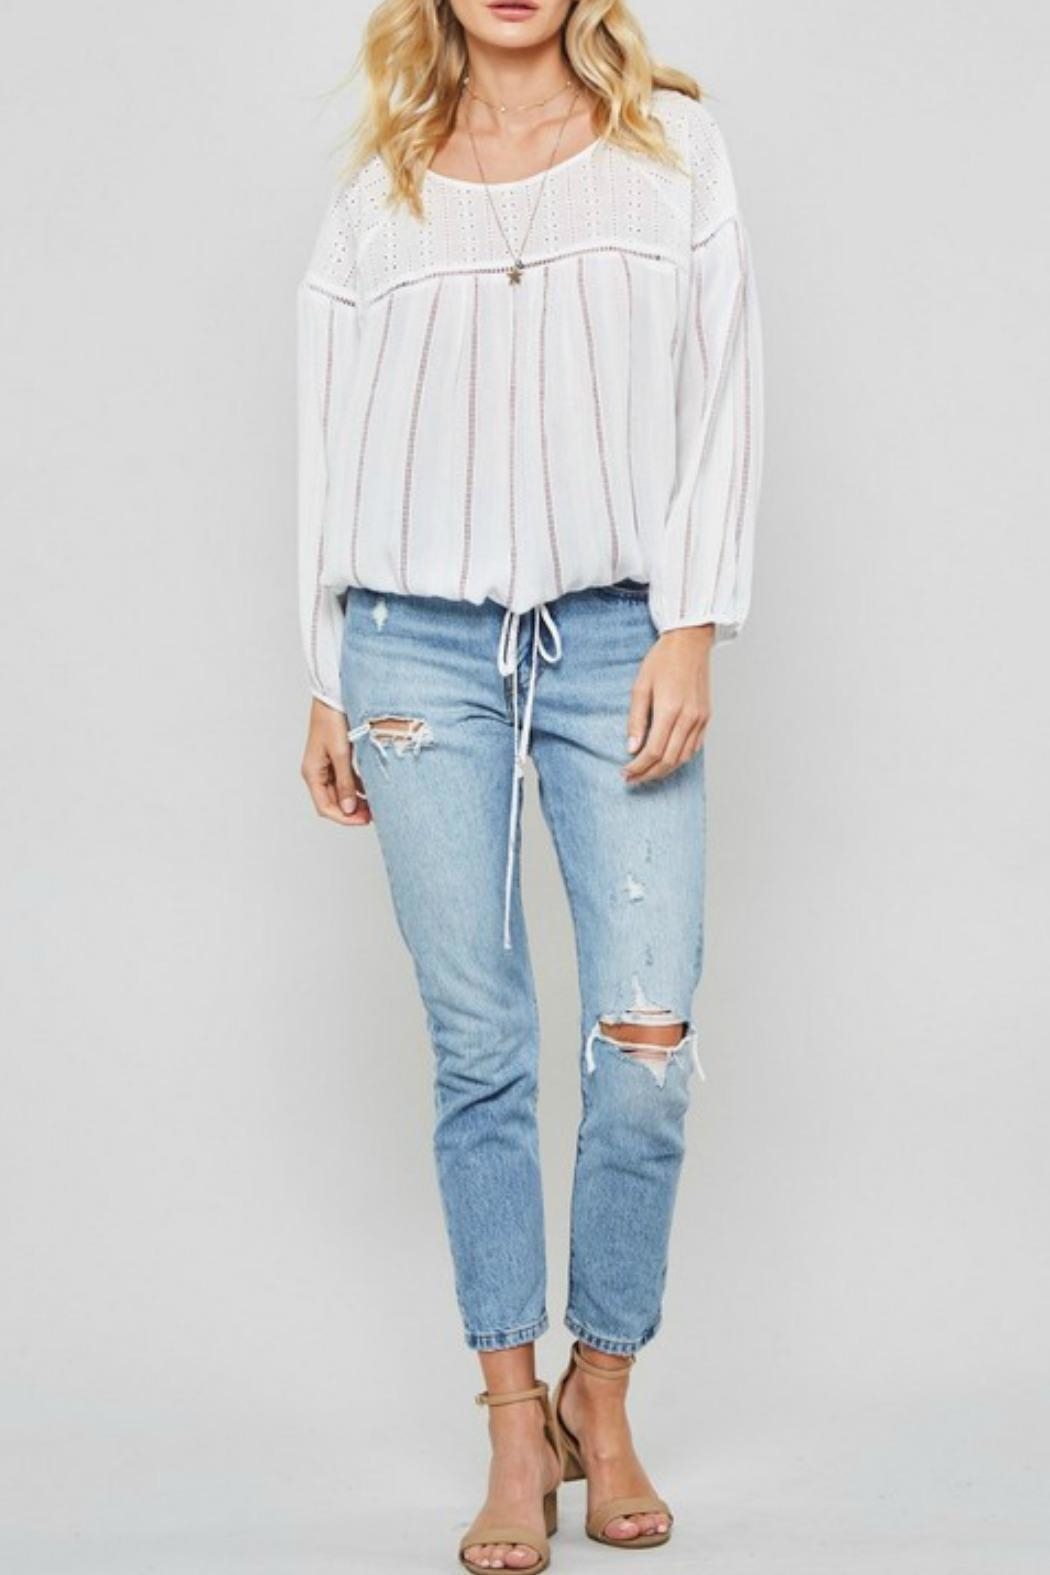 Promesa USA Joey Striped Top - Front Cropped Image